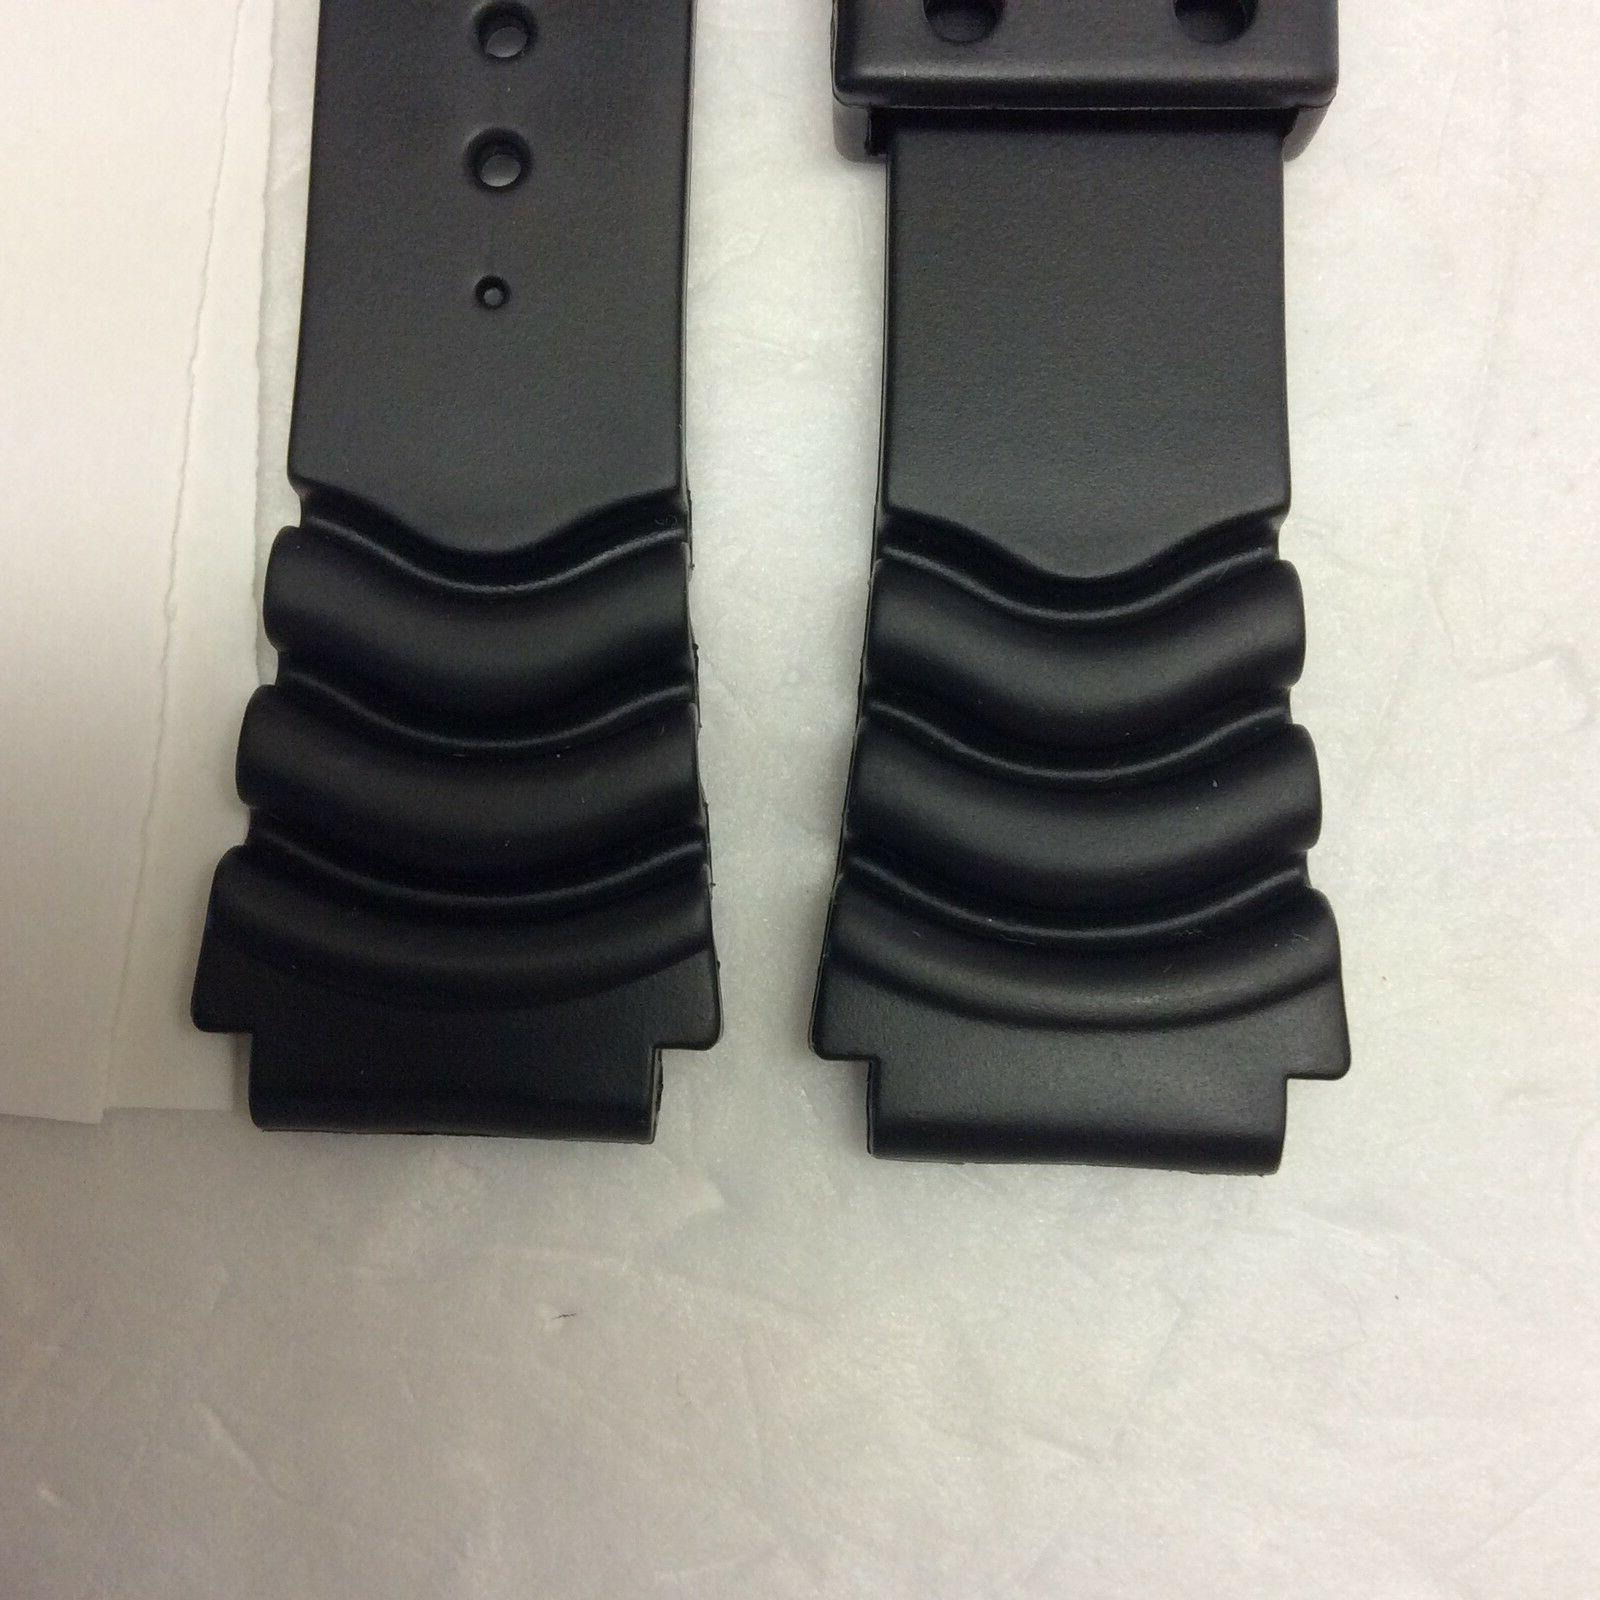 22mm watches Strap fits Seiko + Pins